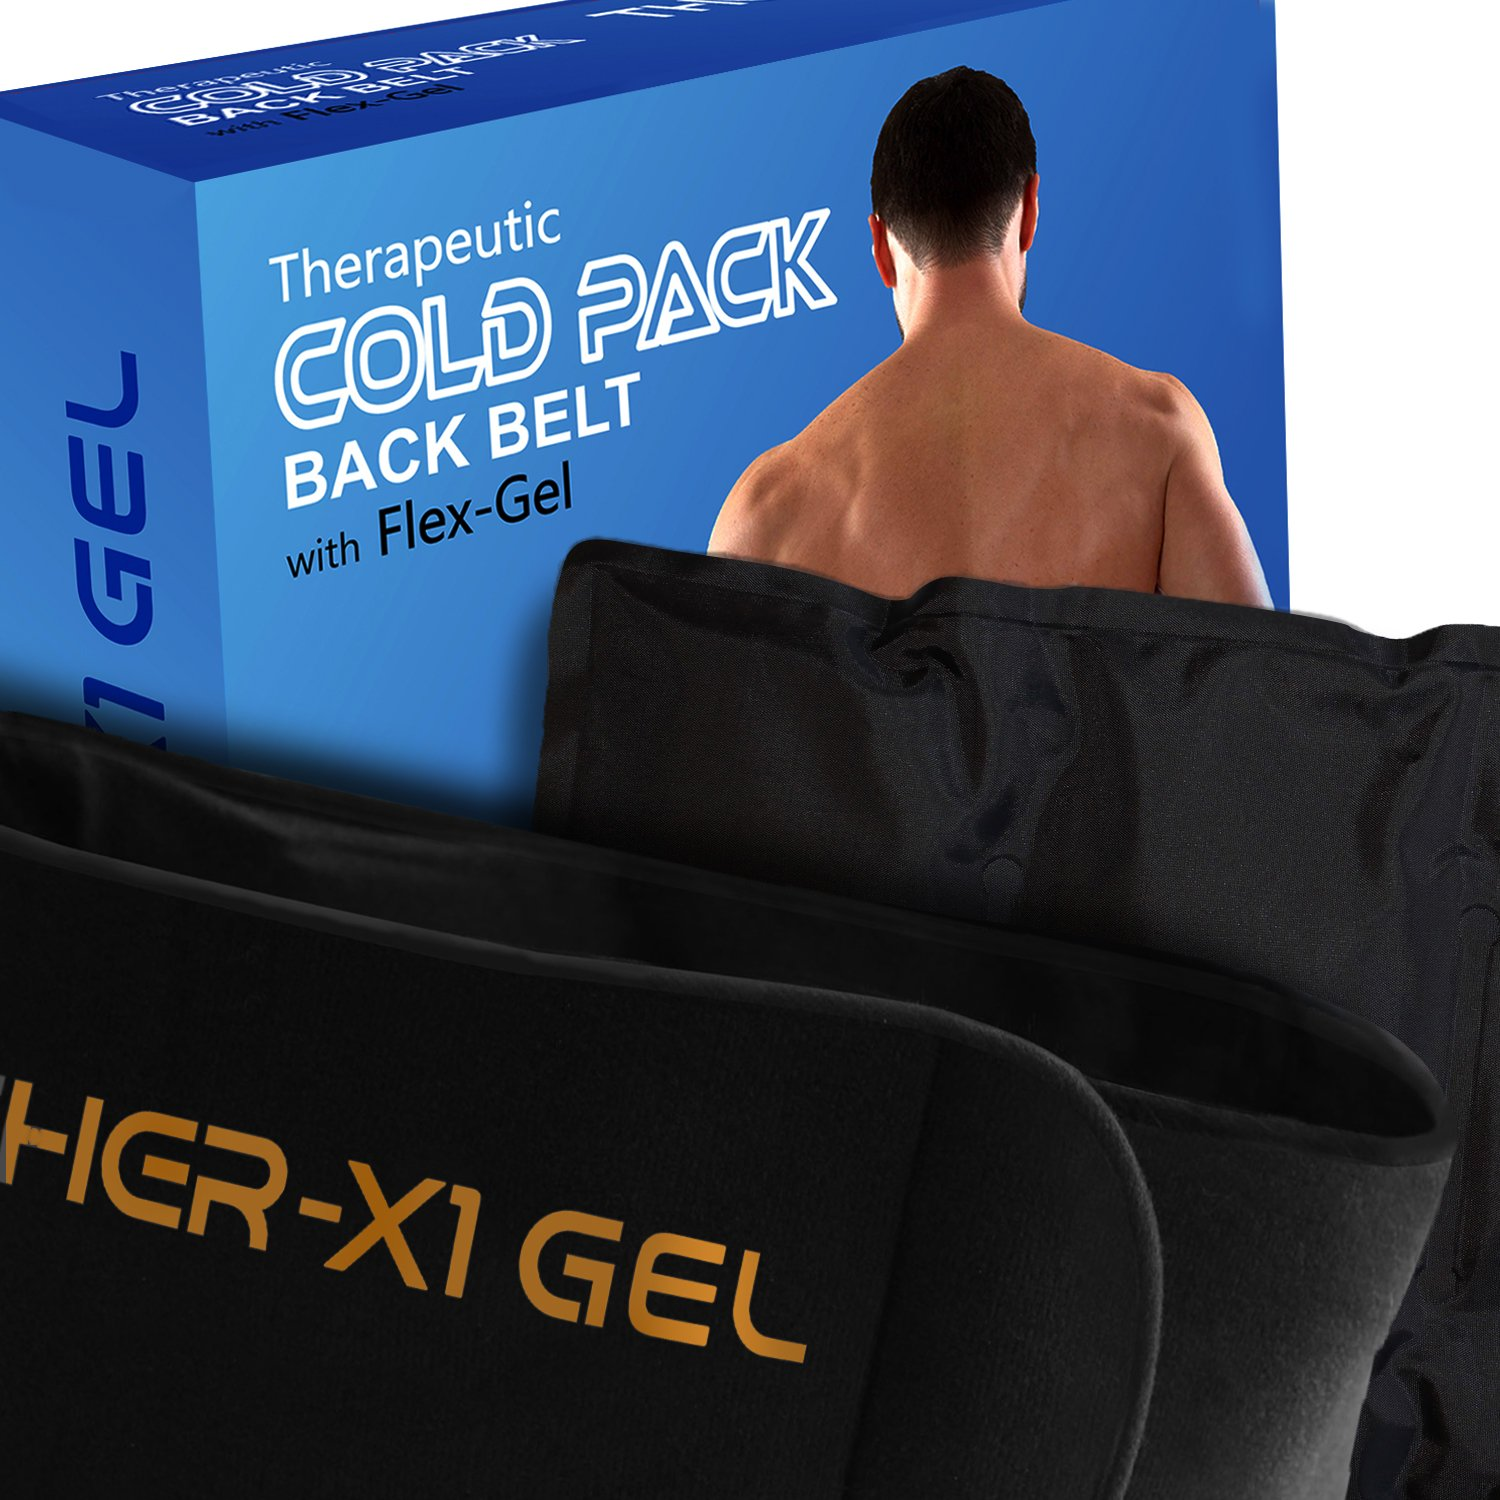 Back Pain Cold Reusable Ice Pack Belt Therapy For Lower Lumbar , Sciatic Nerve Pain Relief Degenerative Disc Disease Coccyx Tailbone Pain Reusable Gel Flexible Medical Grade by MedX (Image #4)